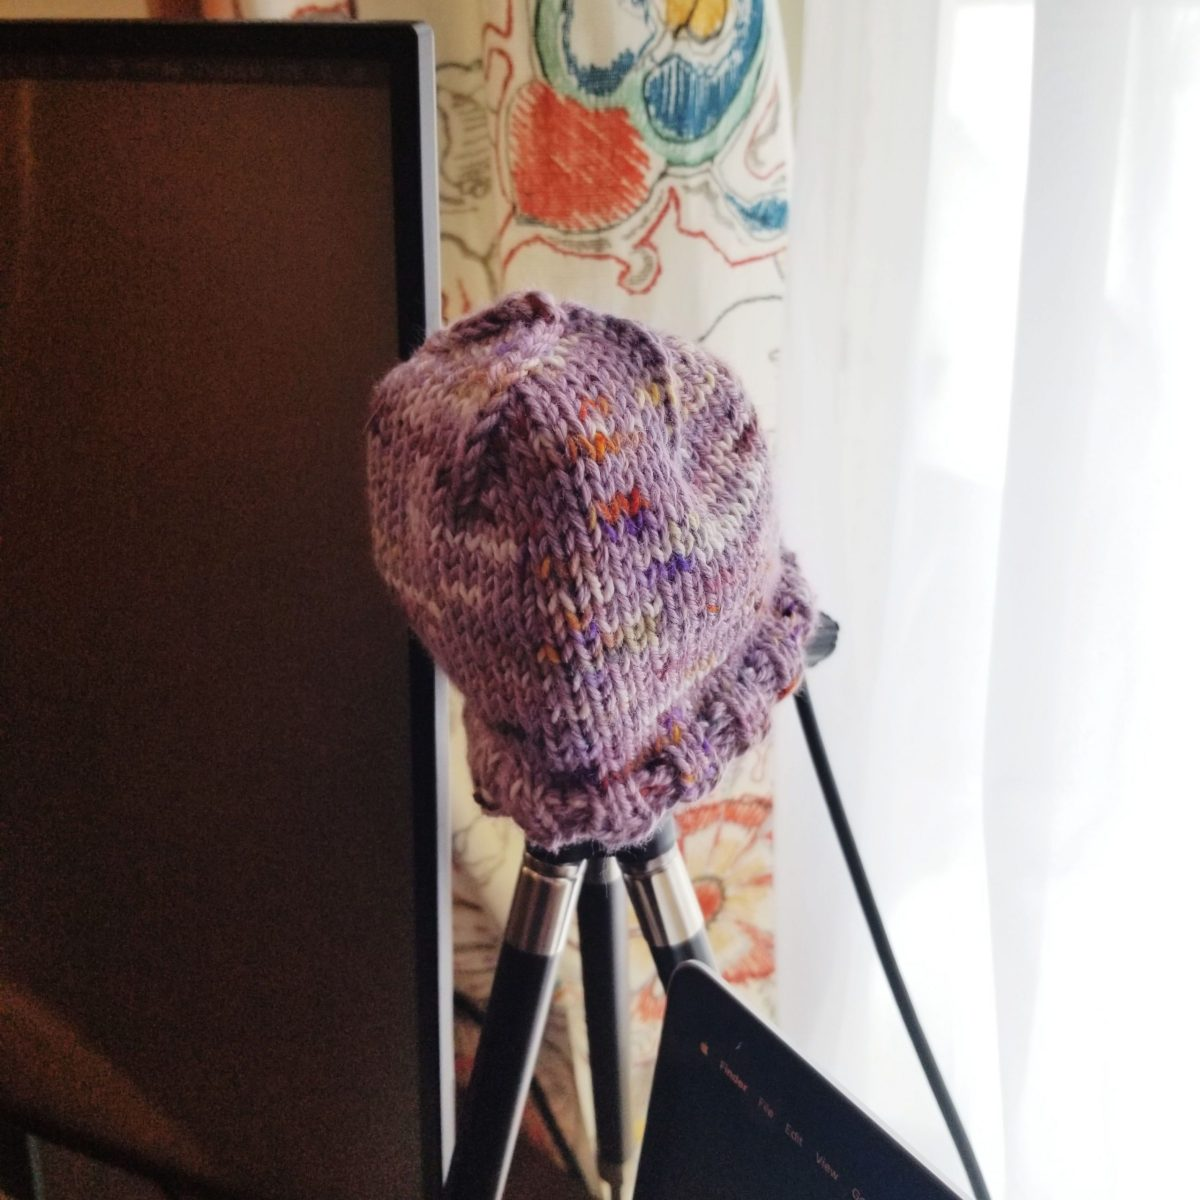 A tiny knitted hat covering a webcam on a tripod mount on Abbie's desk. The yarns are light purple and a hand-dyed cream-mauve-rust, held double.